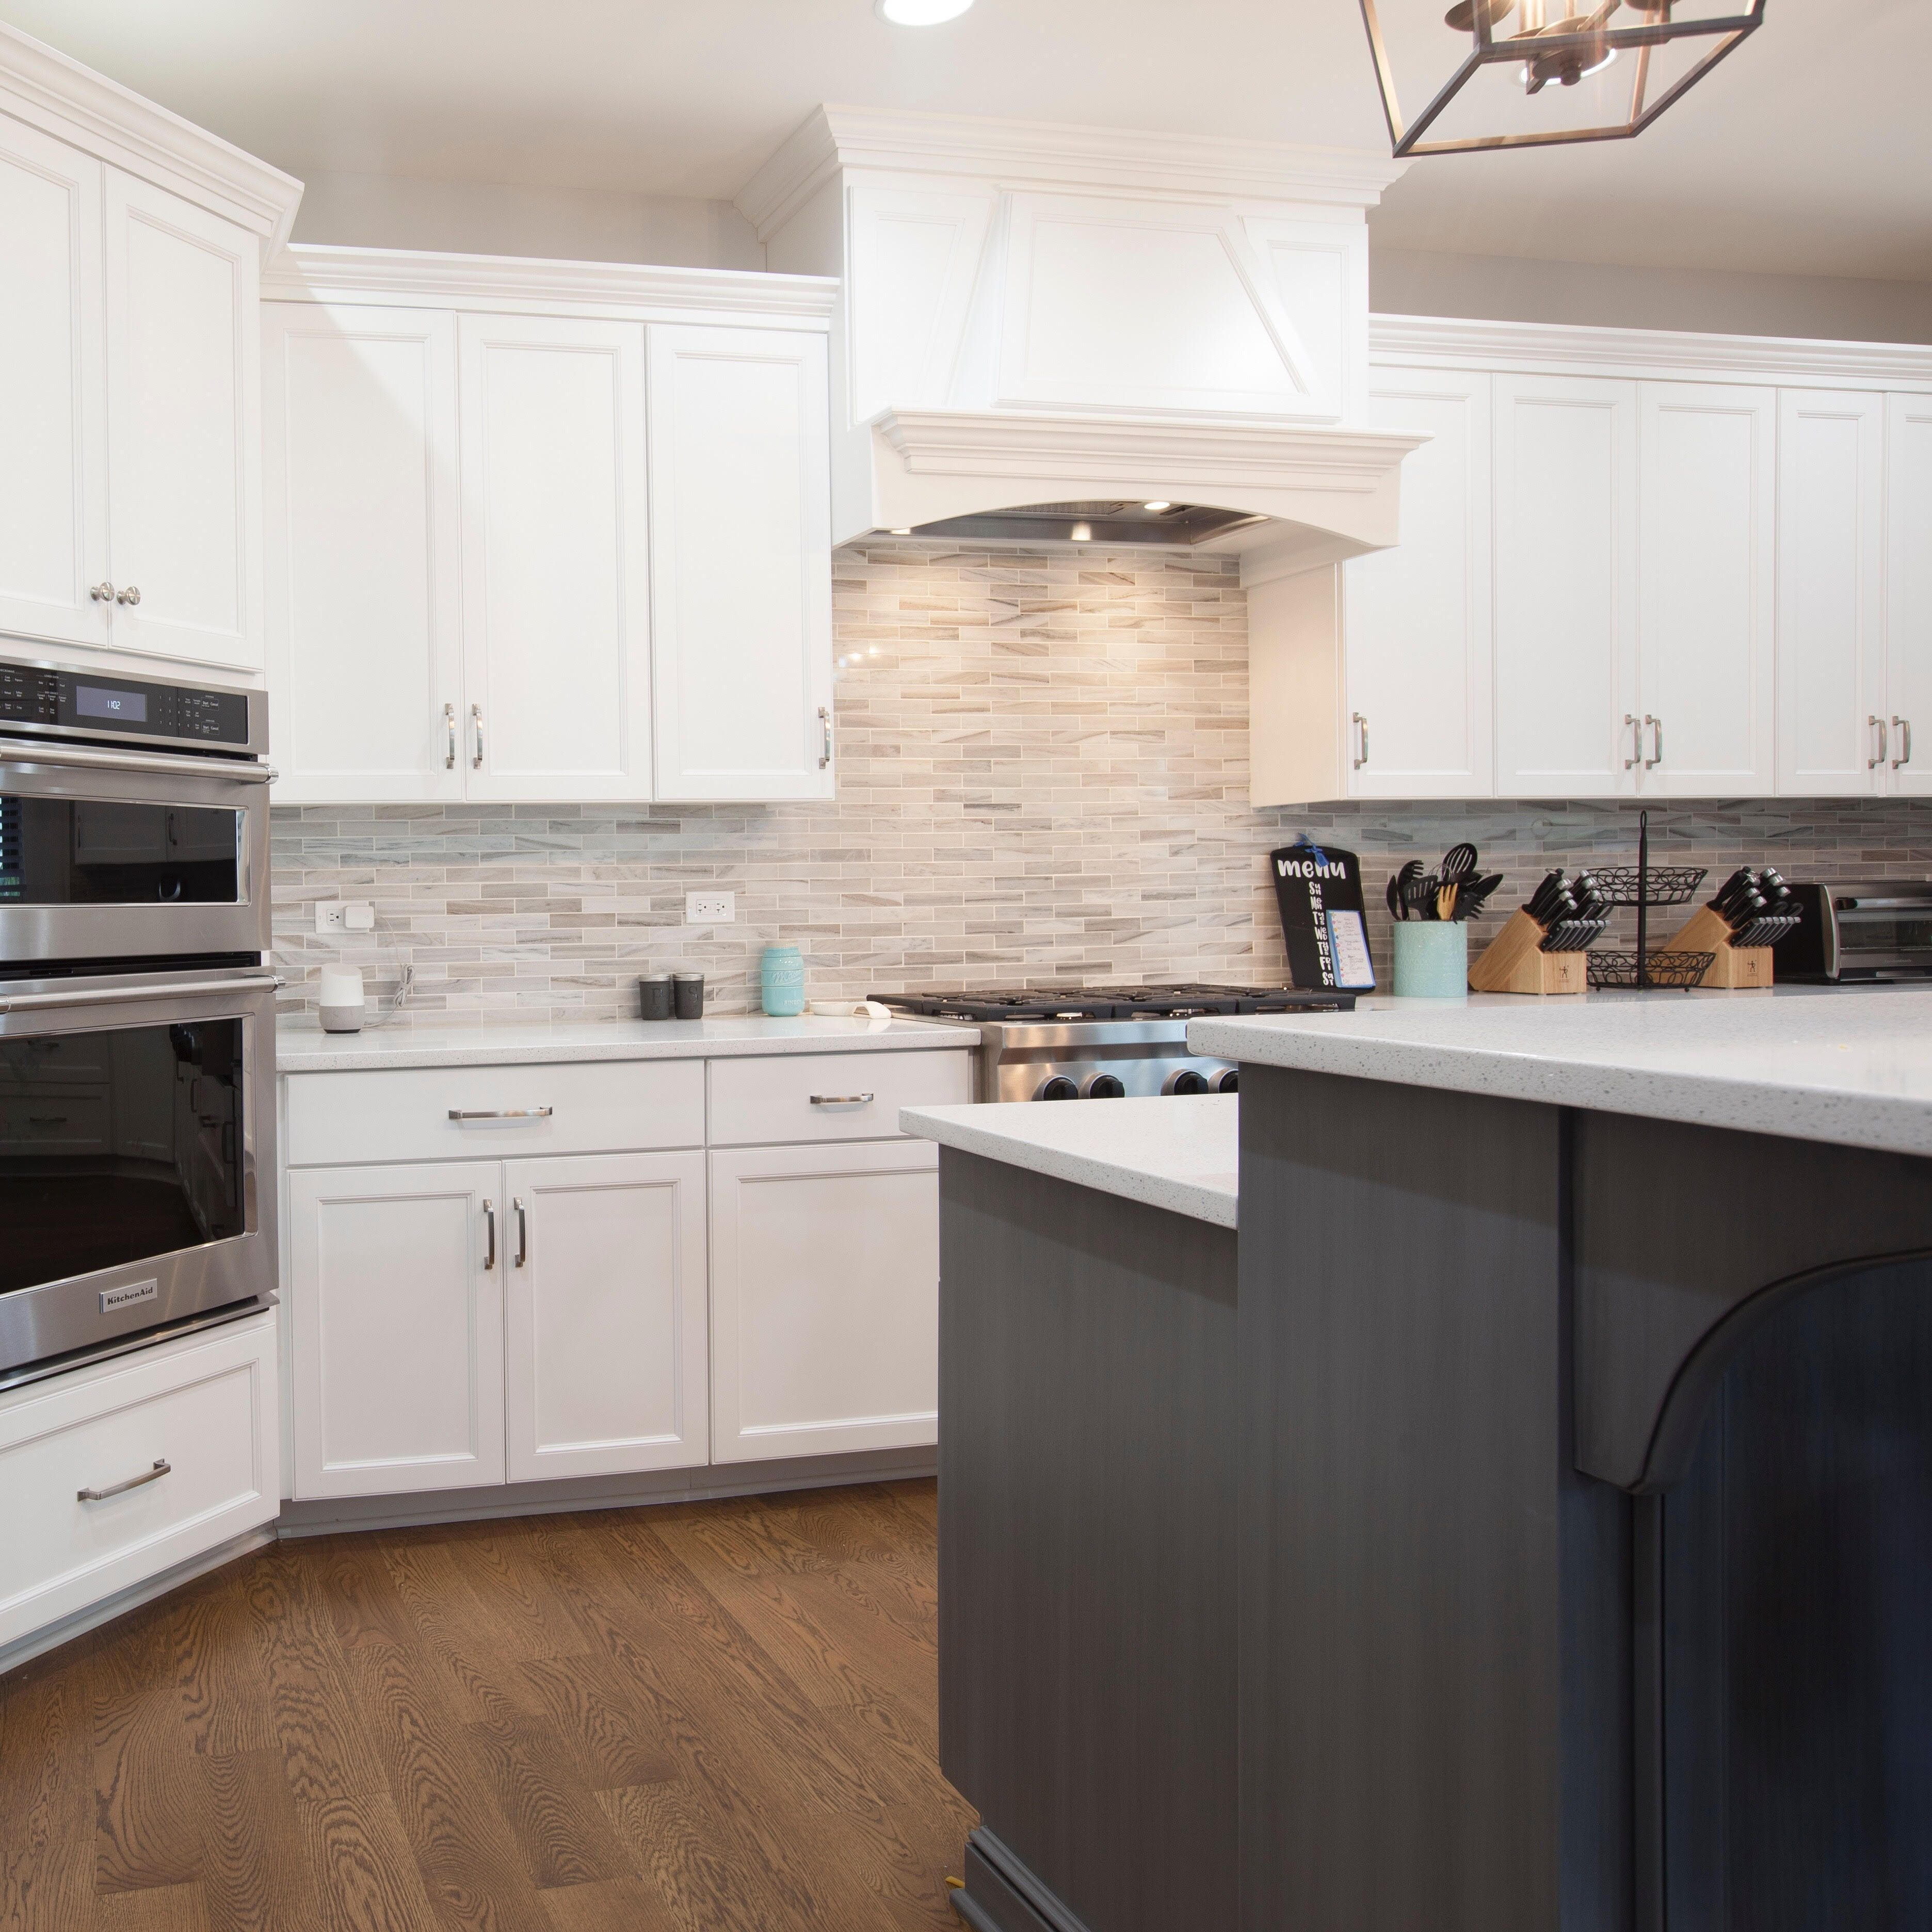 Throwback Thursday This We Throwing It Back To A Kitchen Project We Completed For A Family In F Home Improvement Companies Kitchen Projects Beautiful Cabinet